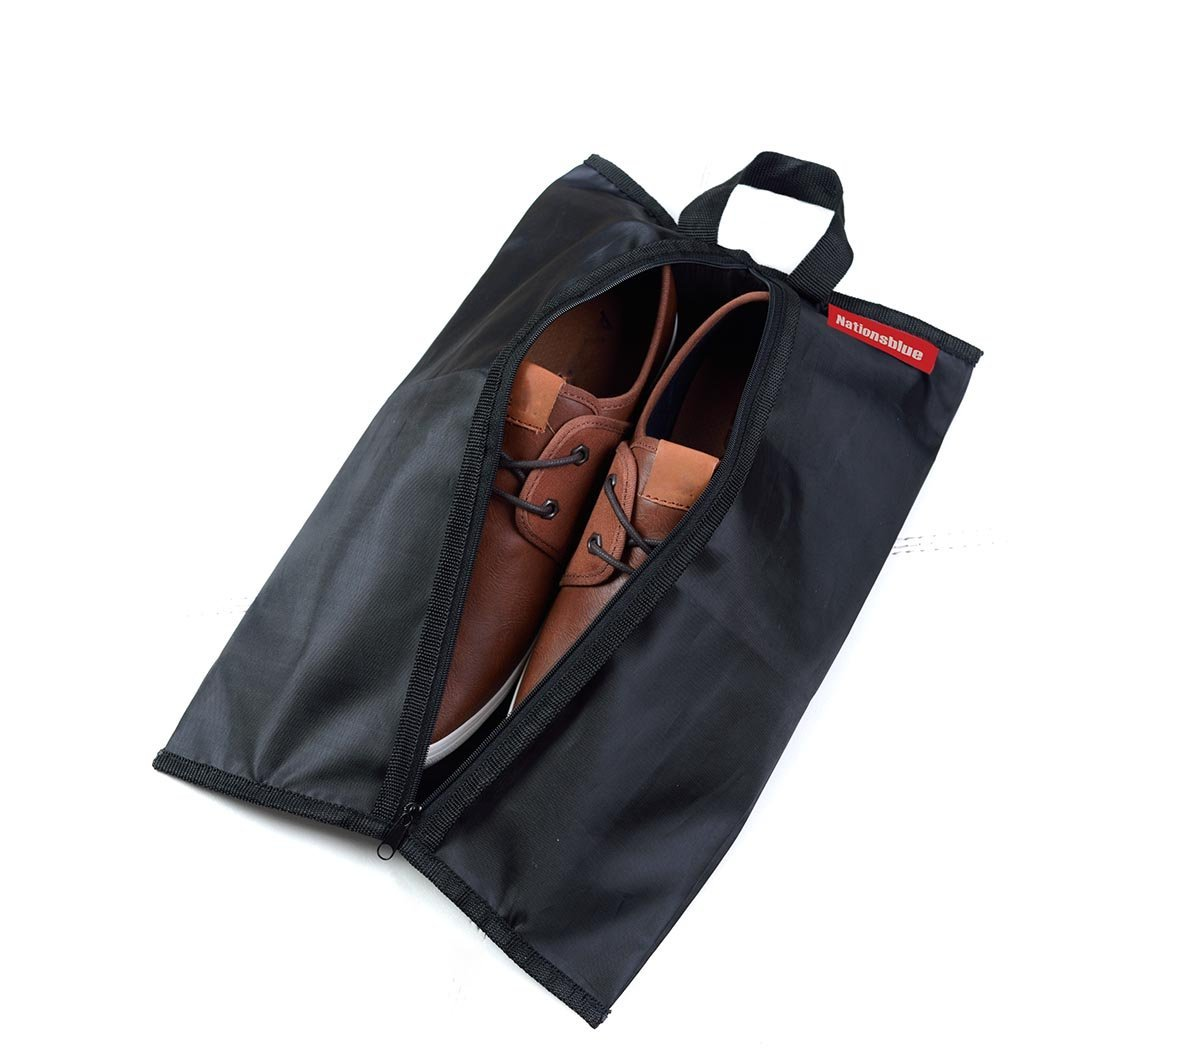 TRAVEL SHOE BAG, Nylon, Waterproof, Great Protection with Zipper Closure- Nationsblue